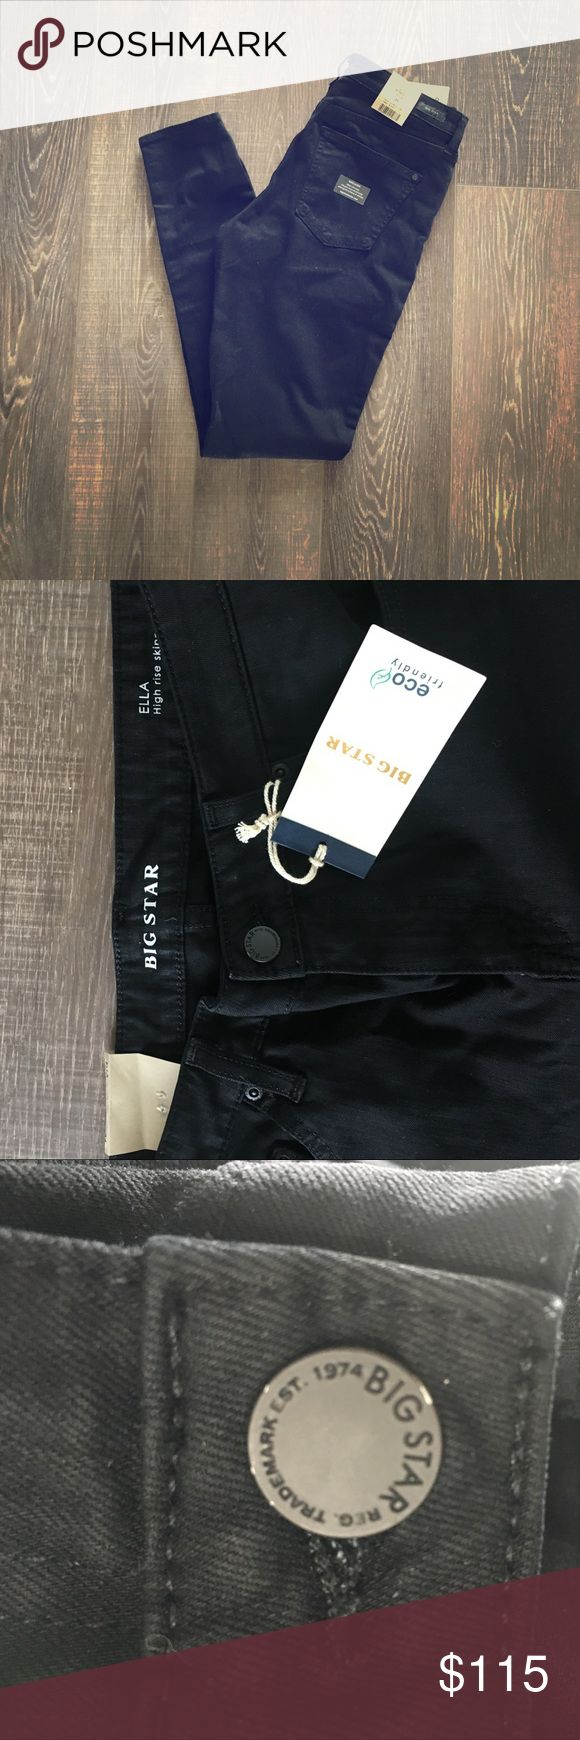 NWT Big Star Black high waist Skinny Brand New with tags. Super cute high waisted classic black skinny jeans. Fit true to size. Big Star Jeans Skinny